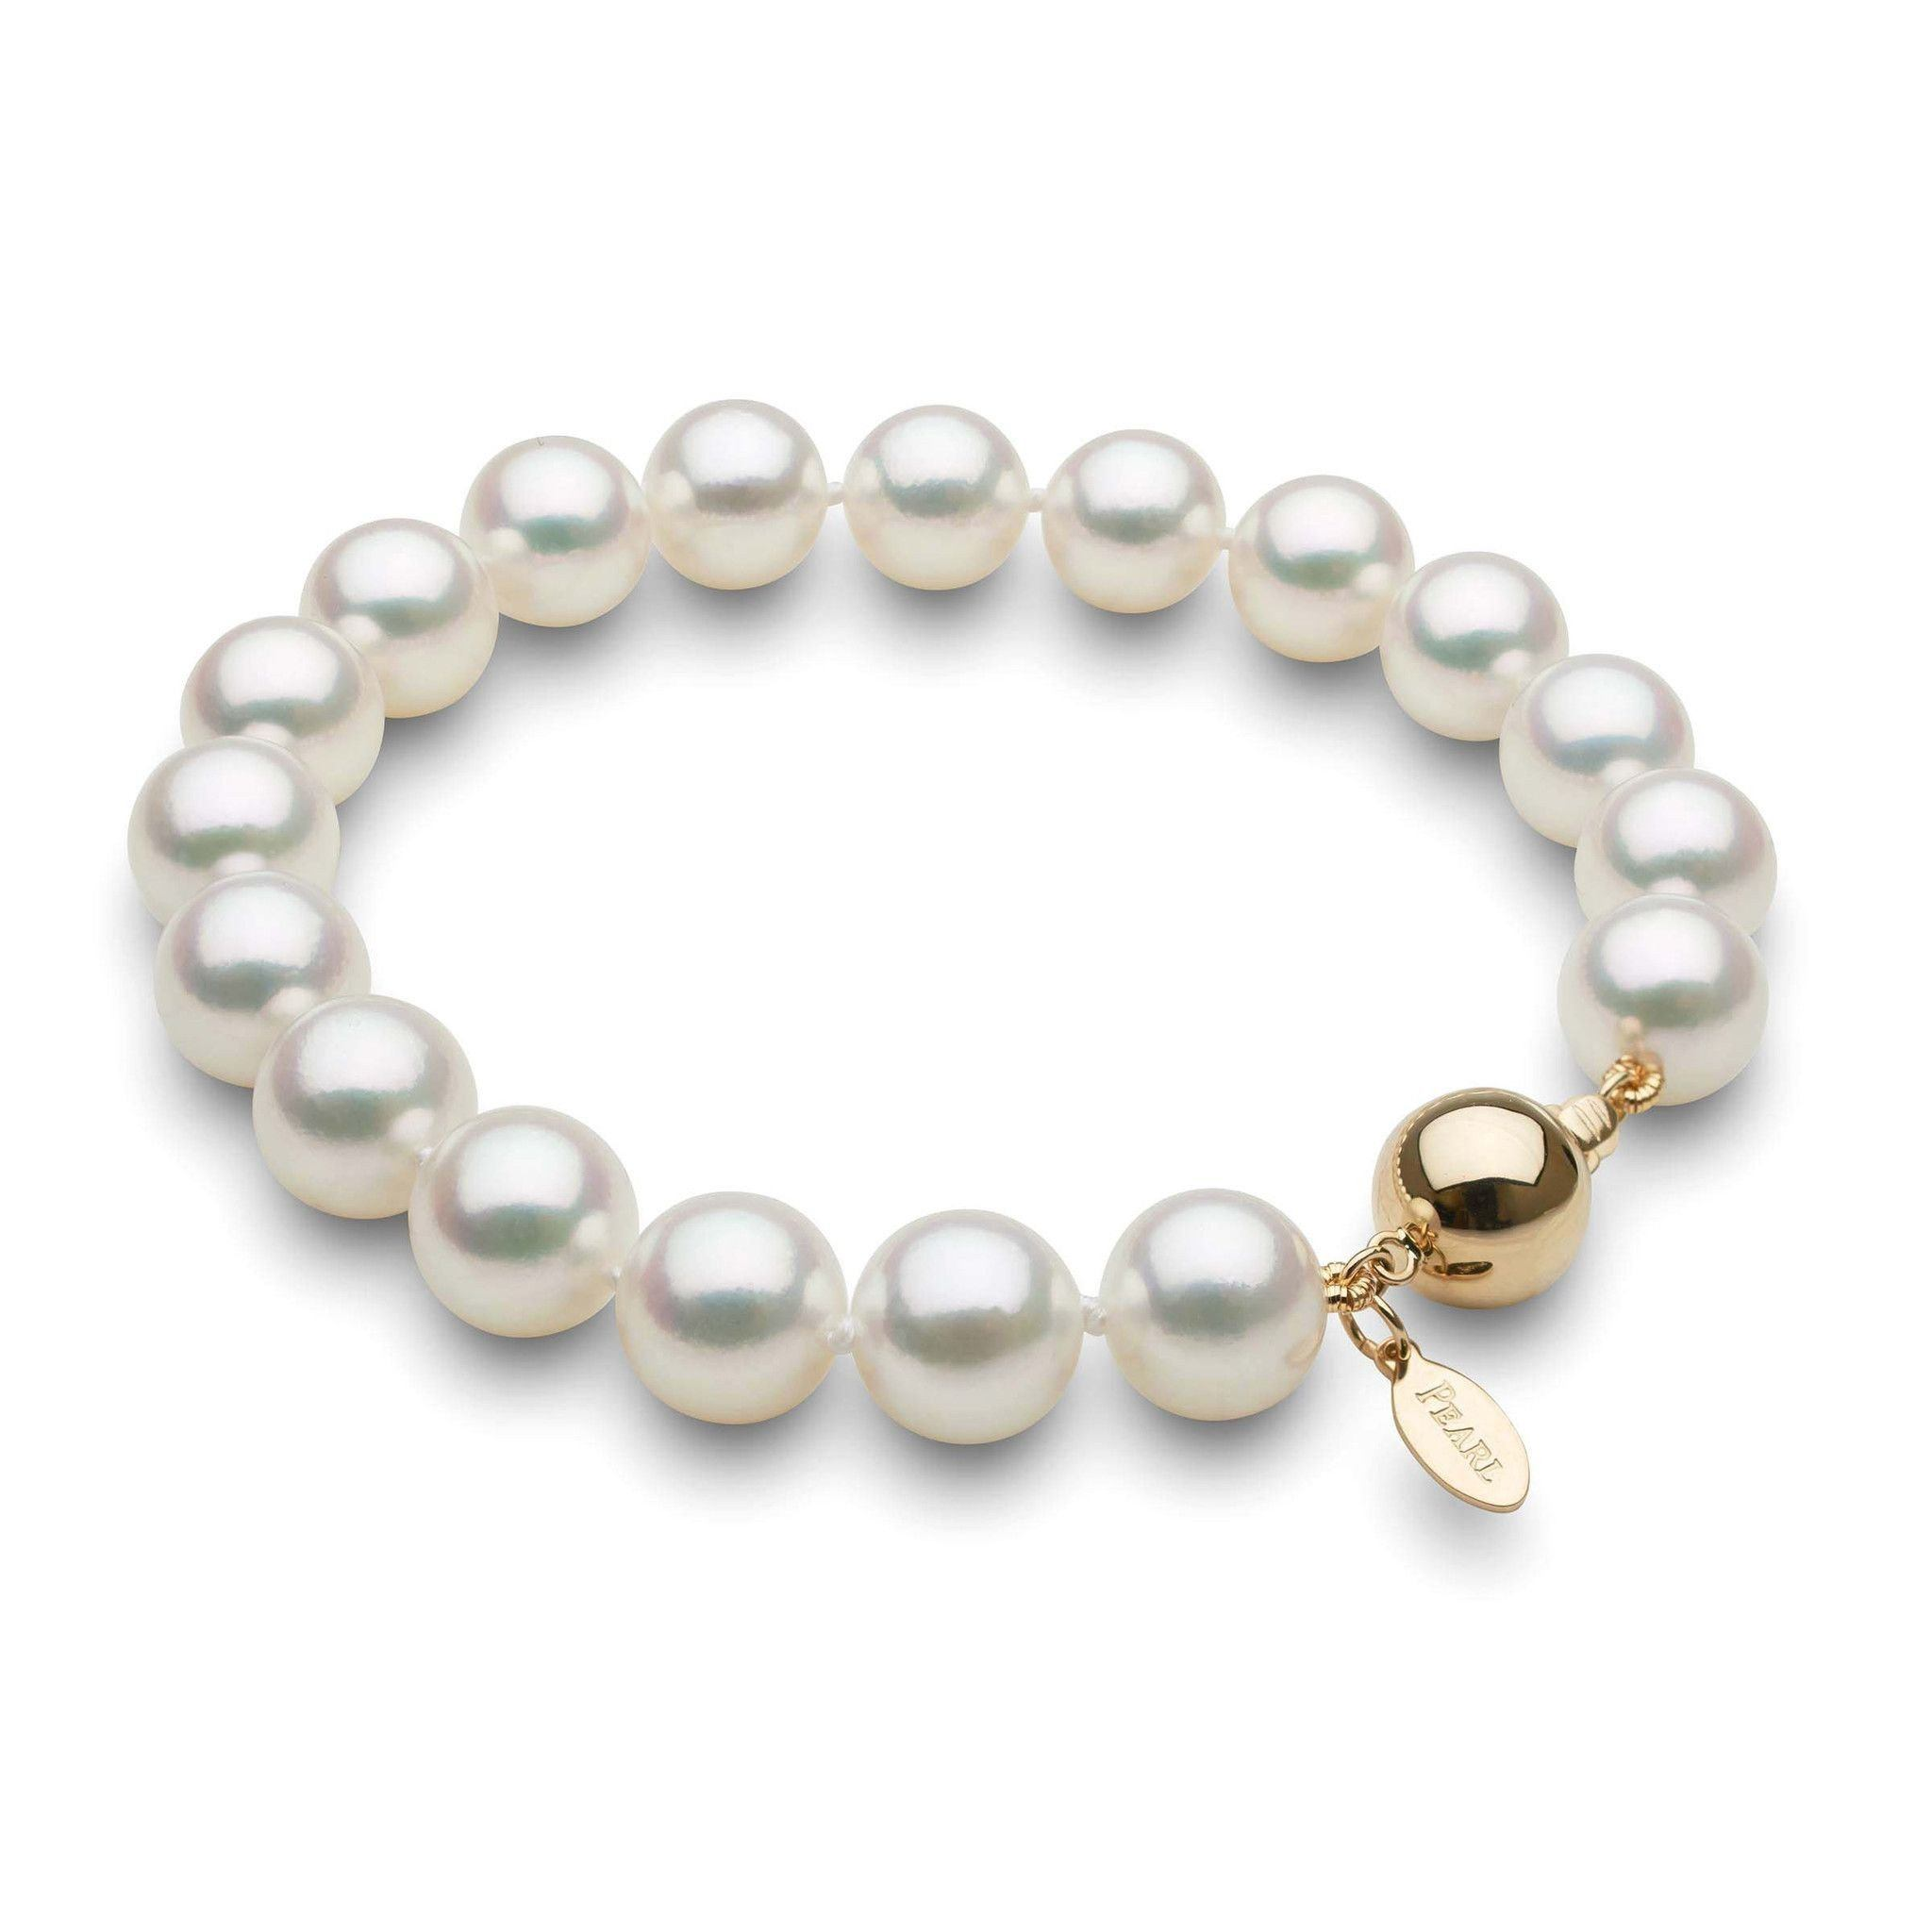 9.0-9.5 mm Natural White Hanadama Akoya Pearl Bracelet